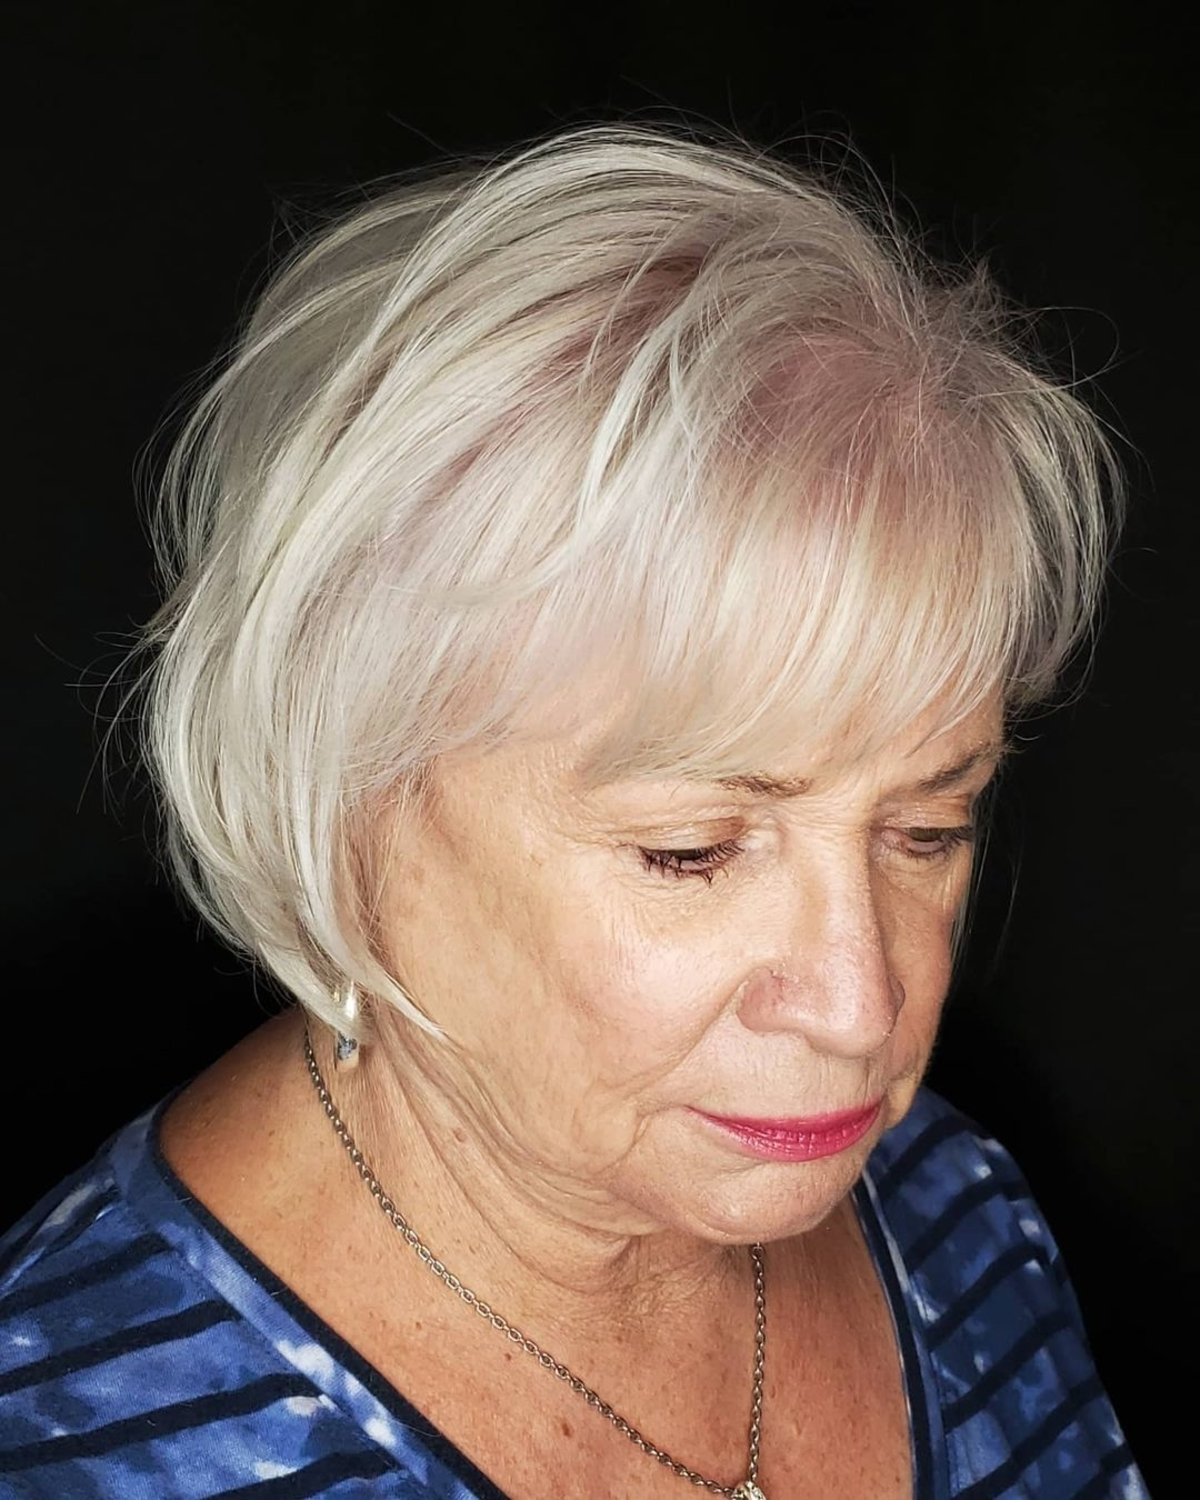 18 Trendy Short Haircuts for Older Women with Fine Hair to Boost Volume